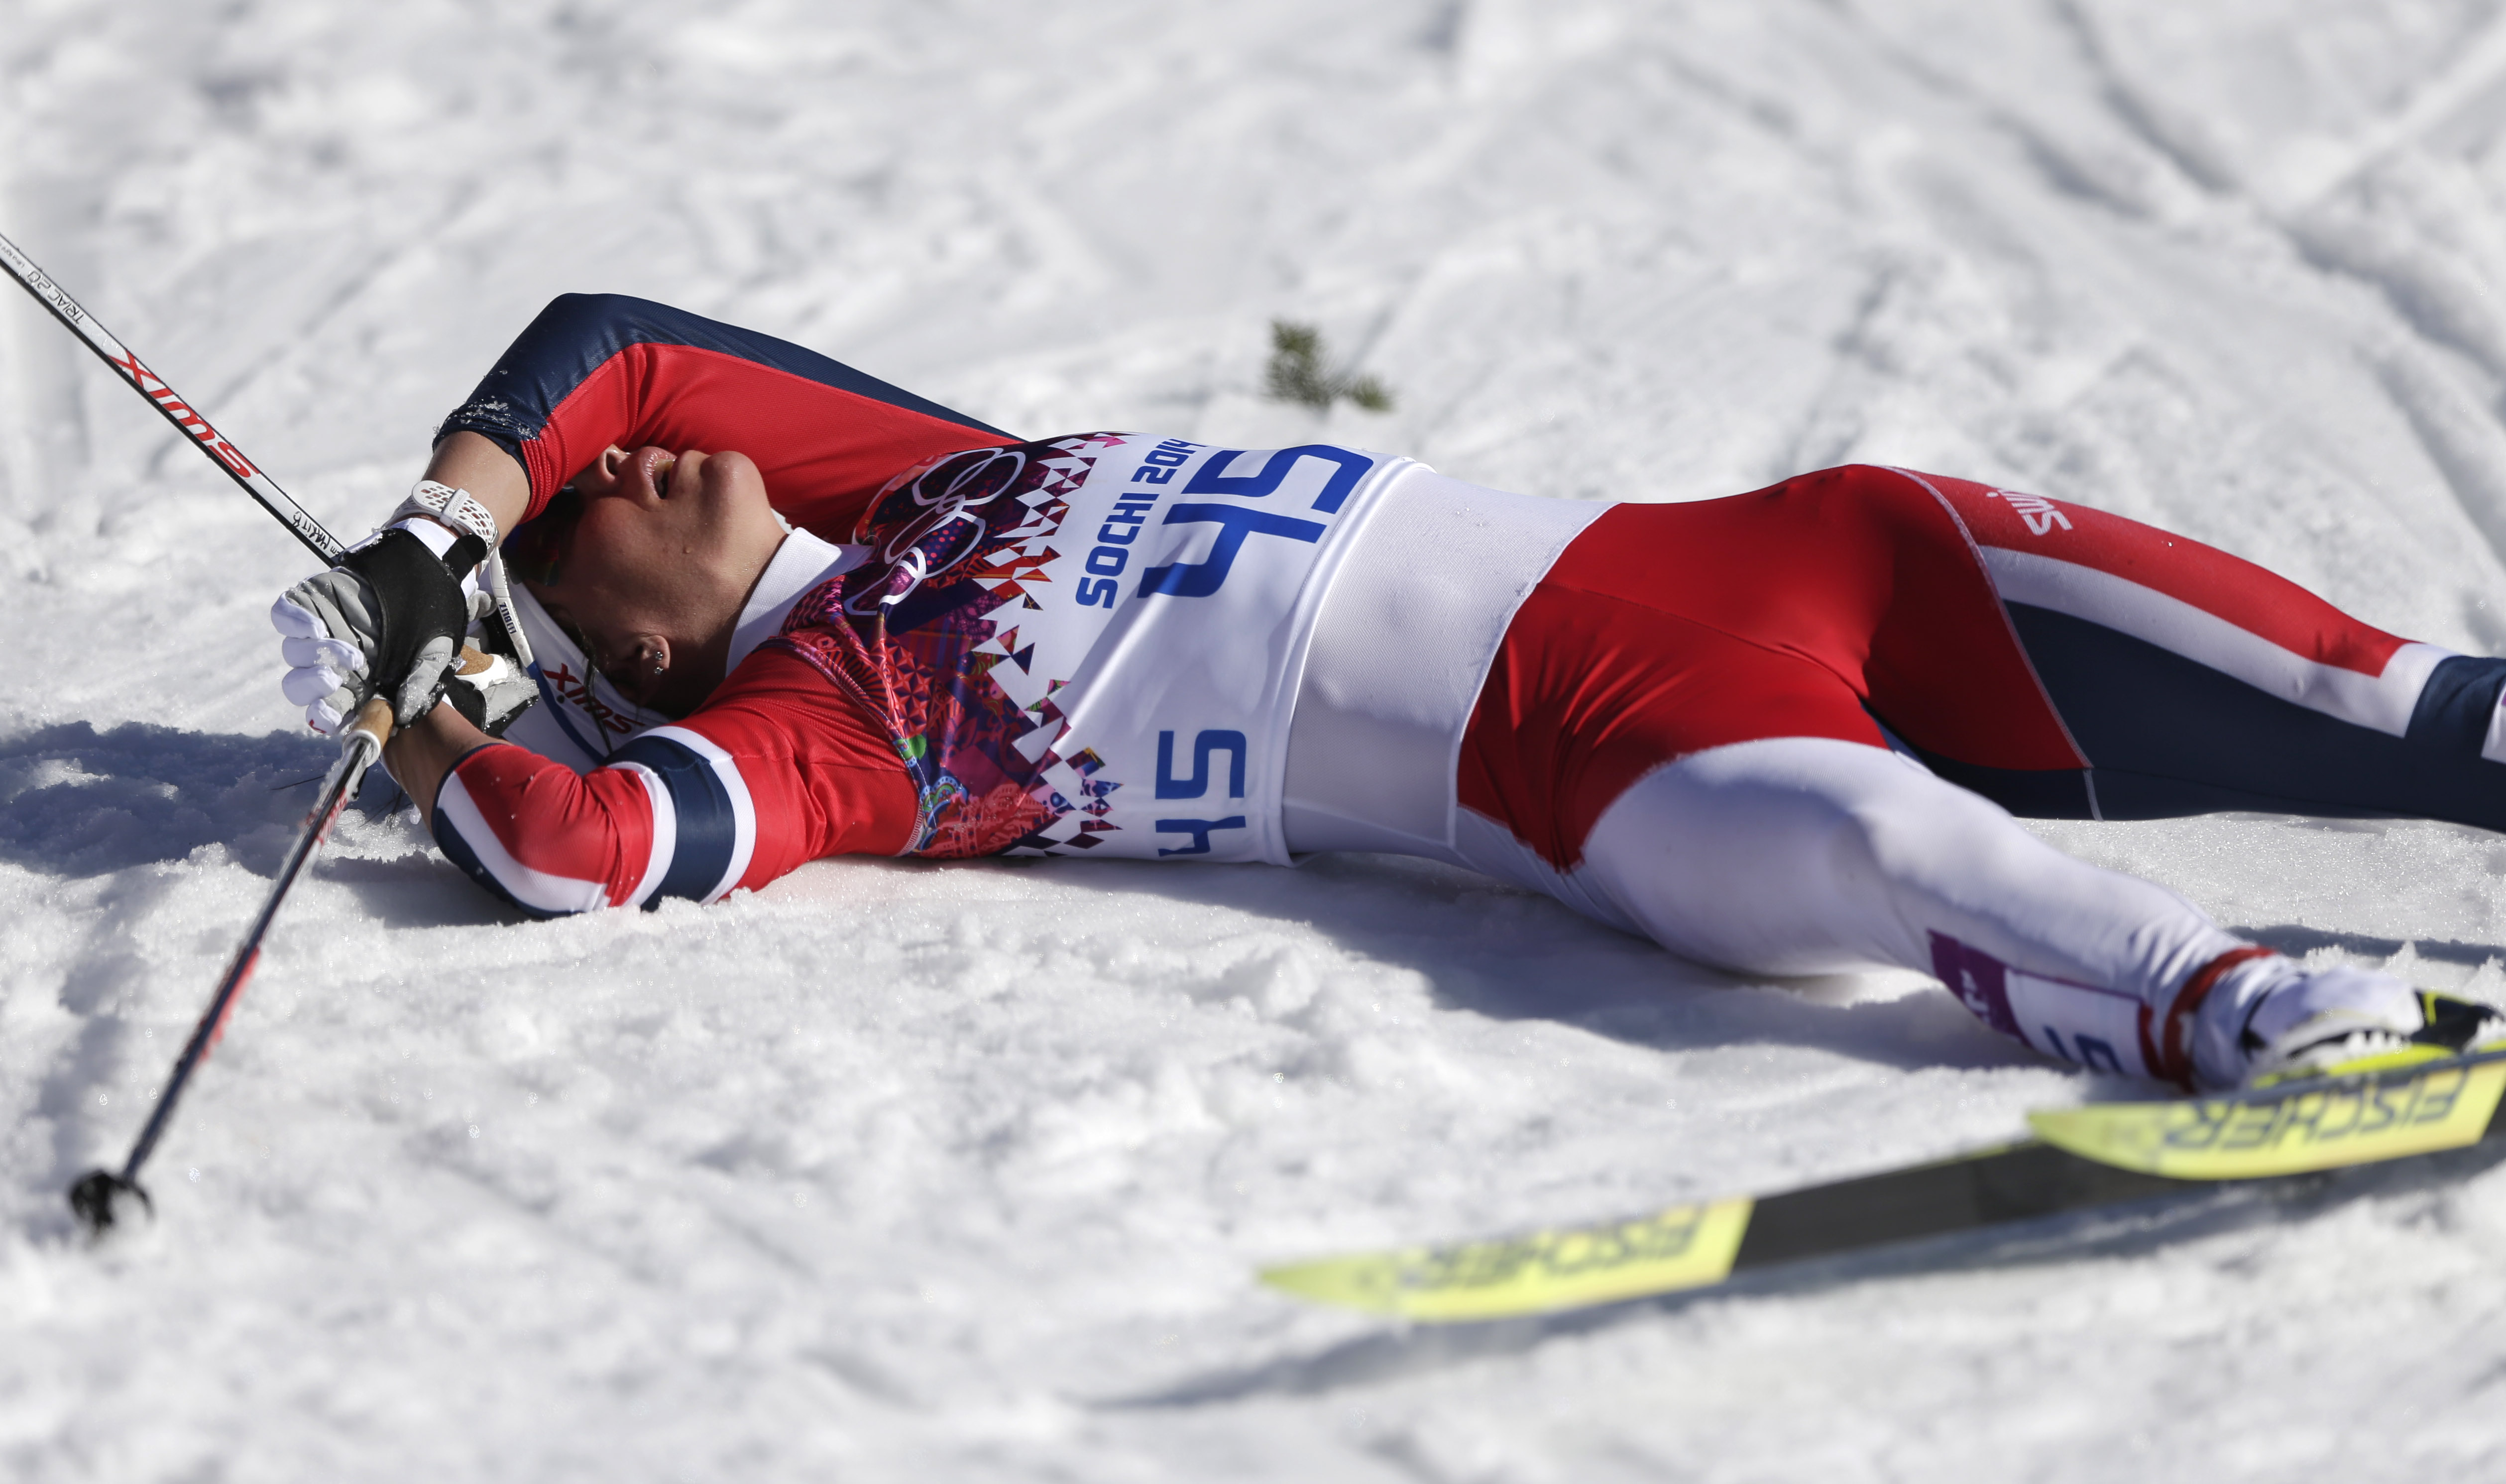 Norway's Marit Bjoergen catches her breath after the women's 10K classical-style cross-country race at the 2014 Winter Olympics, Thursday, Feb. 13, 2014, in Krasnaya Polyana, Russia. (AP Photo/Matthias Schrader)